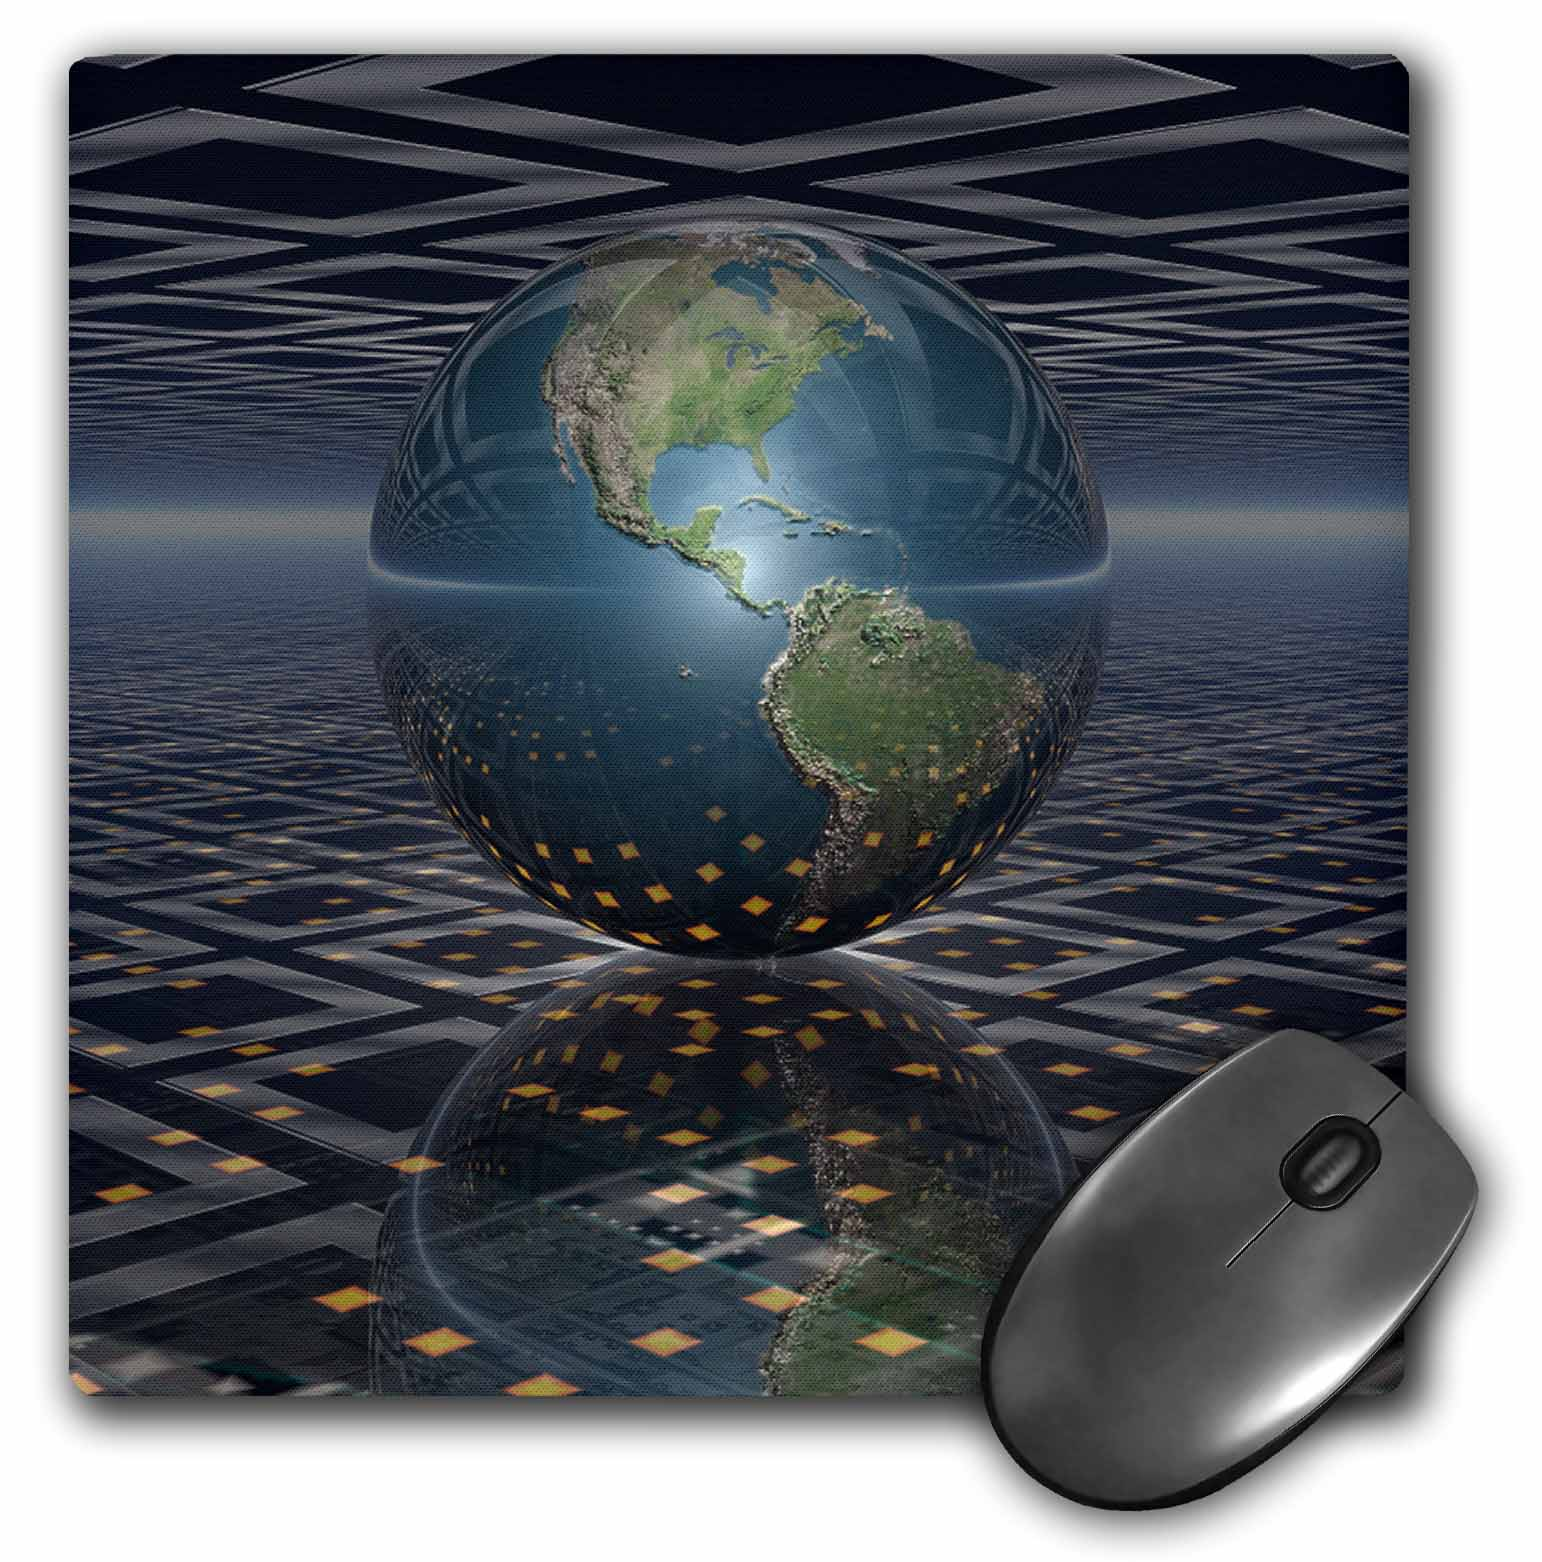 3dRose Earth Horizons surreal scene of reflecting Earth globe resting on computer board, Mouse Pad, 8 by 8 inches